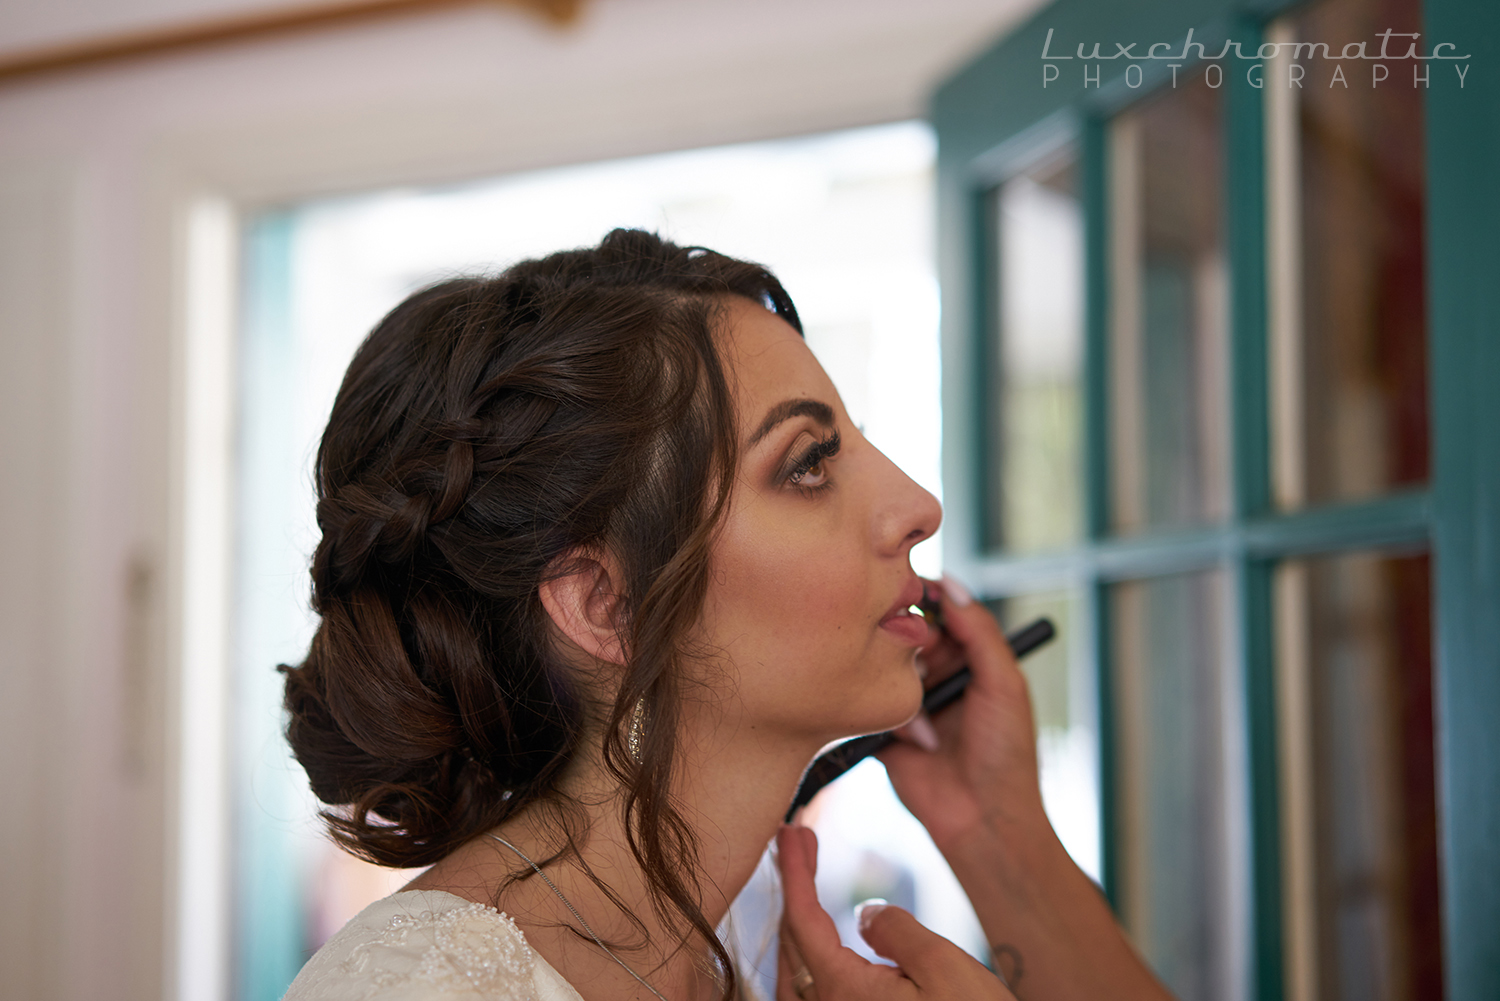 070817_Steph_Sil-San-Francisco-Bay-Area-Carmel-Valley-Monterey-Bay-California-Wedding-Los-Laureles-Lodge-Bride-Gown-Dress-Groom-Engaged-Knot-Bridesmaids-Luxchromatic-Portrait-Sony-Alpha-a7Rii-Interfit-Profoto-Best-Photographer-Photography-0092 copy.jpg